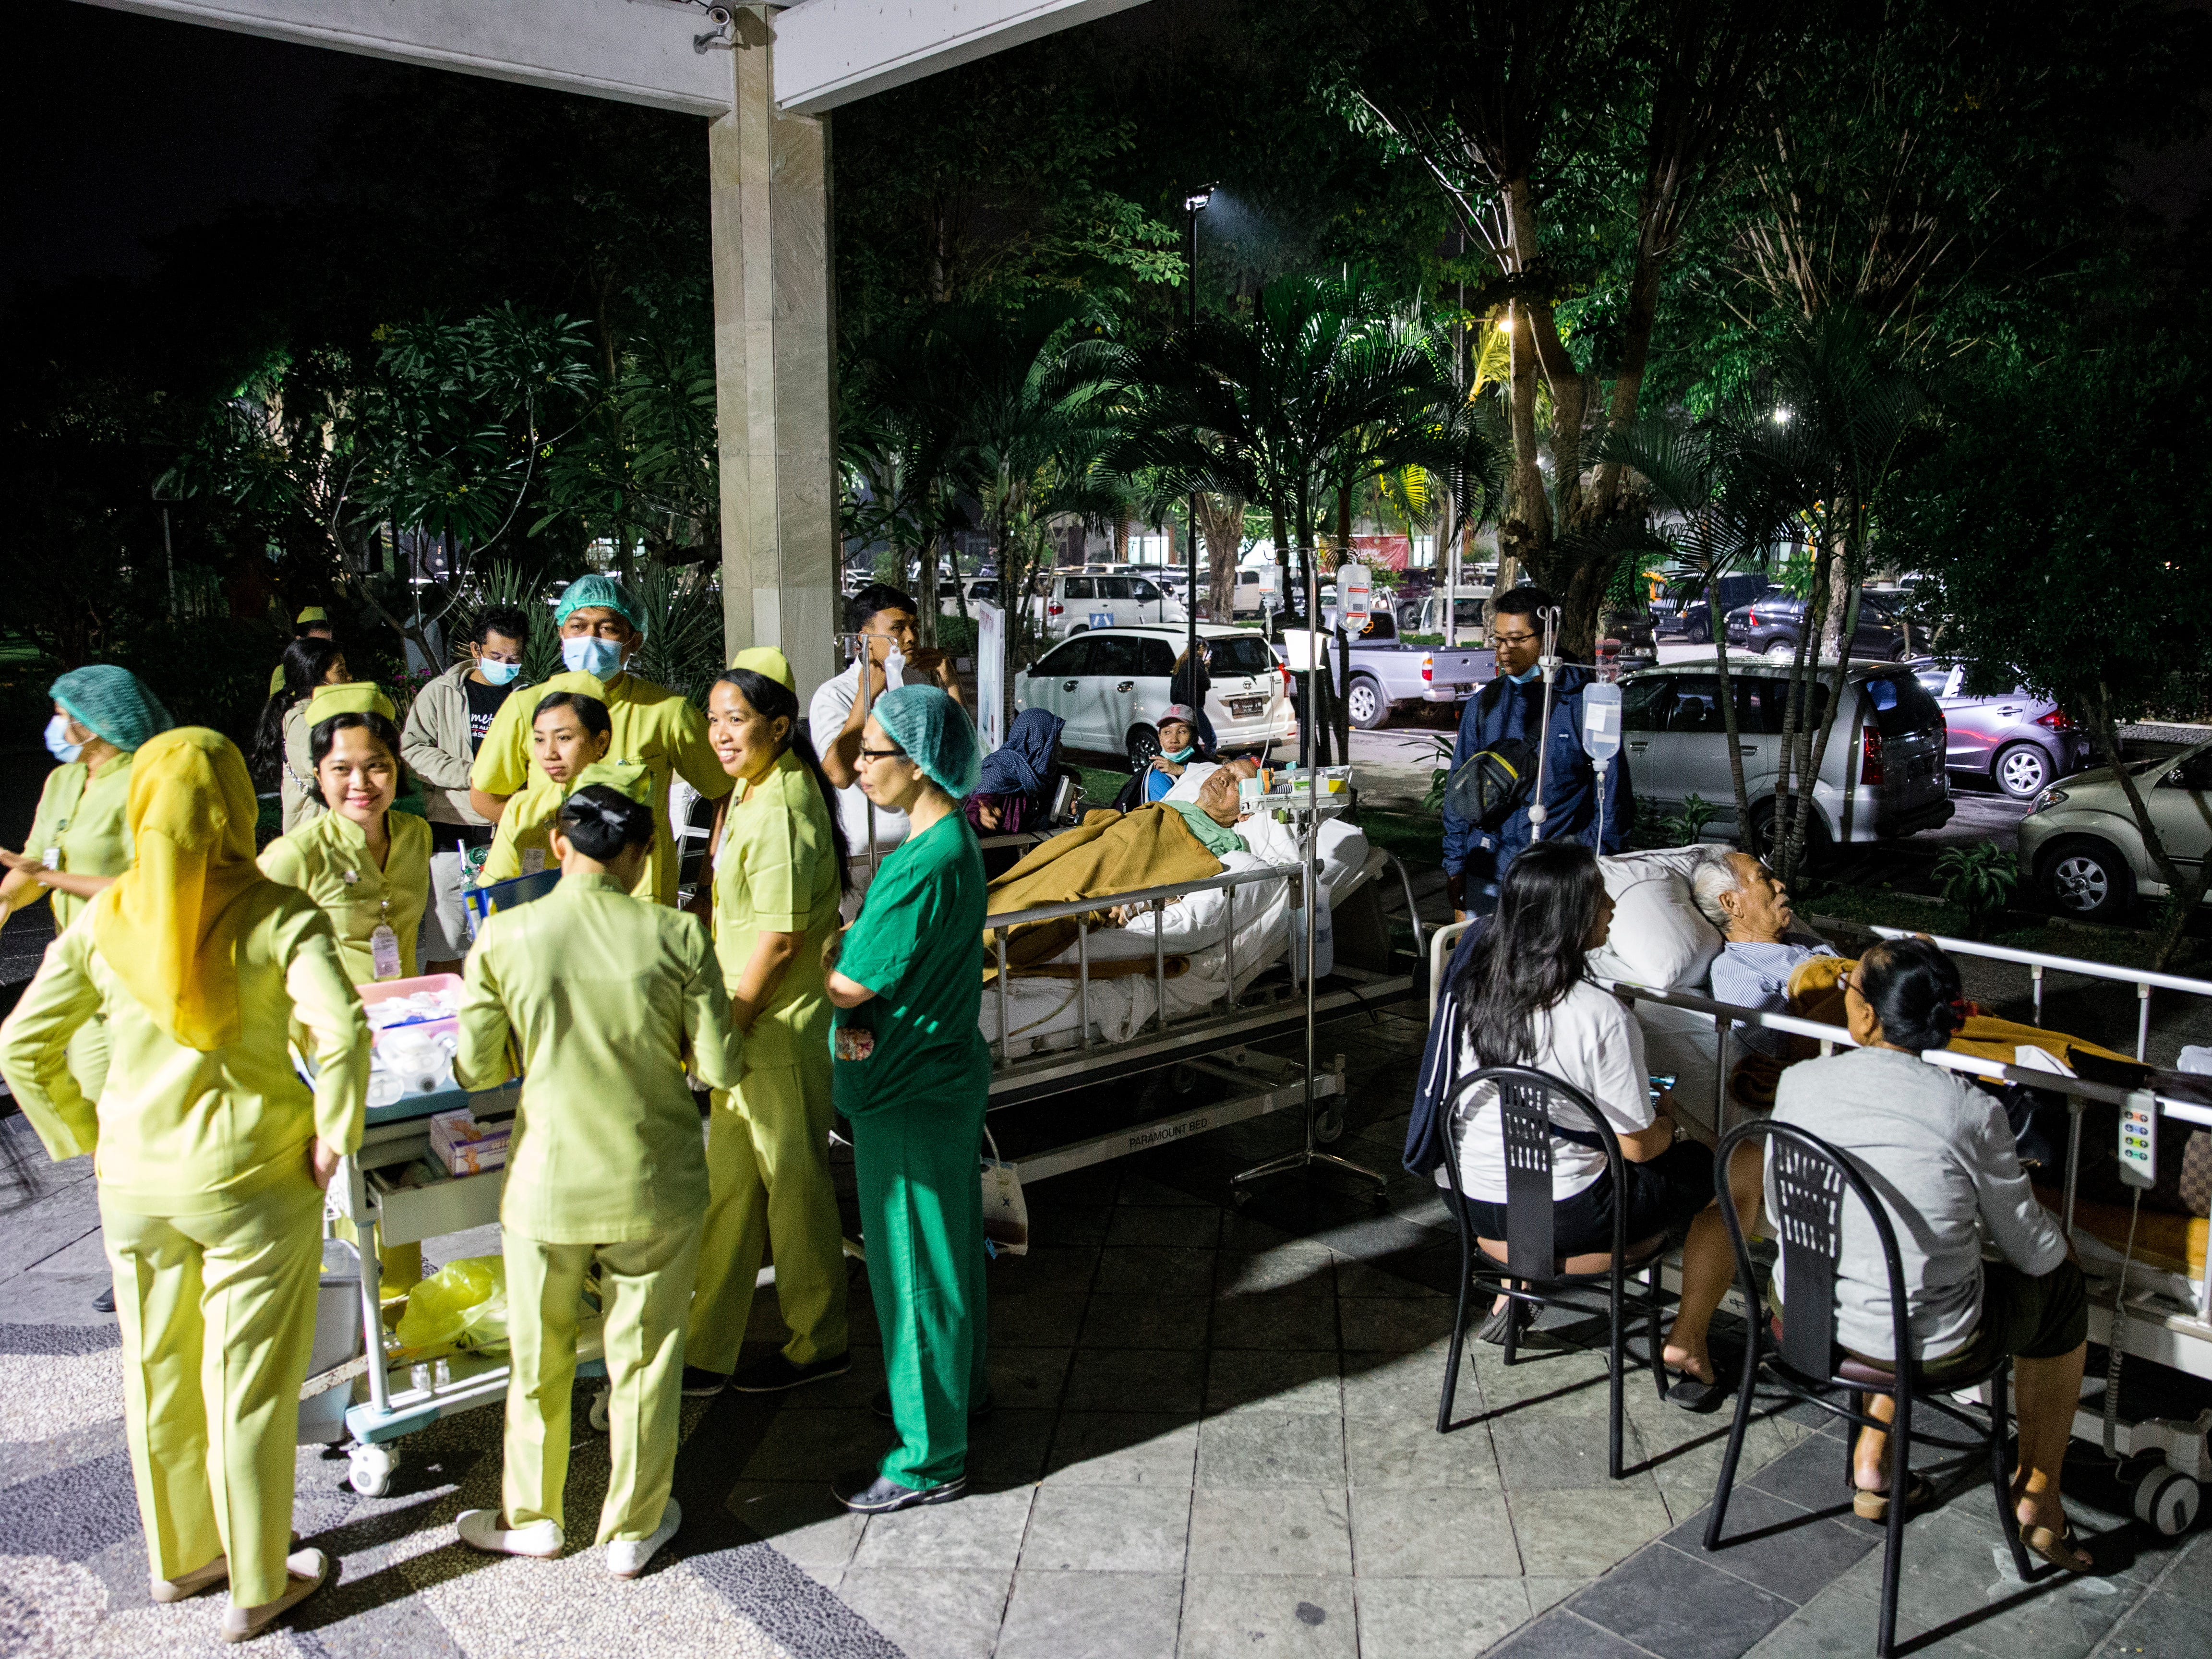 Hospital patients are moved outside of the hospital building after an earthquake was felt in Denpasar, Bali, Indonesia on Aug. 5, 2018.